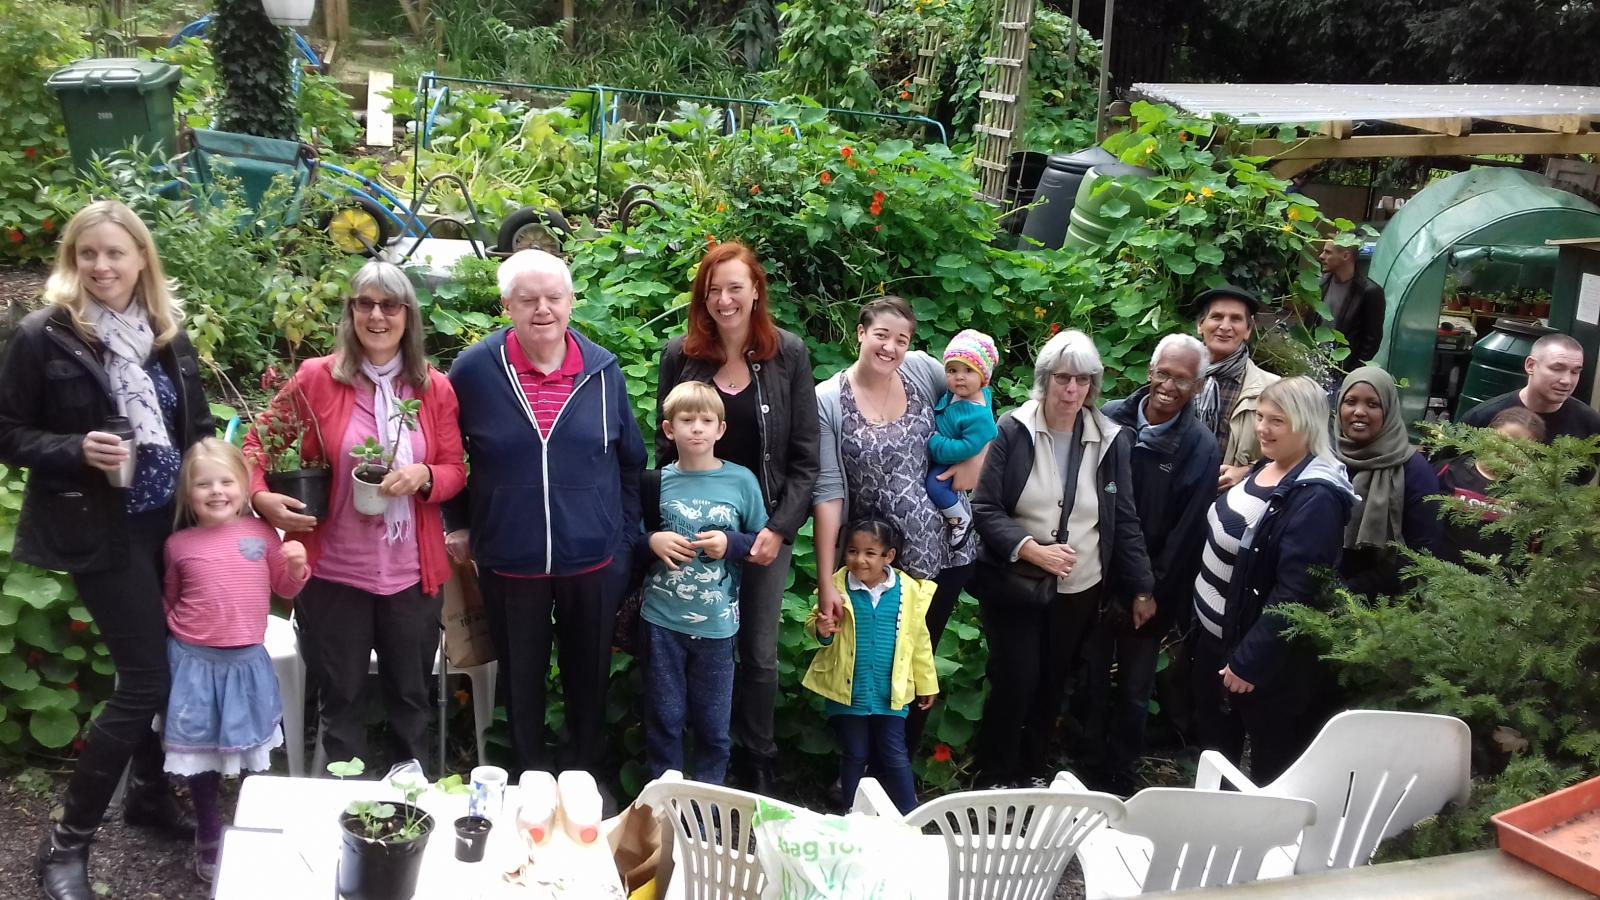 Maryon Park Community Garden in the Royal Borough of Greenwich is one of hundreds of gardens involved in the Big Dig Day over the past 8 years.